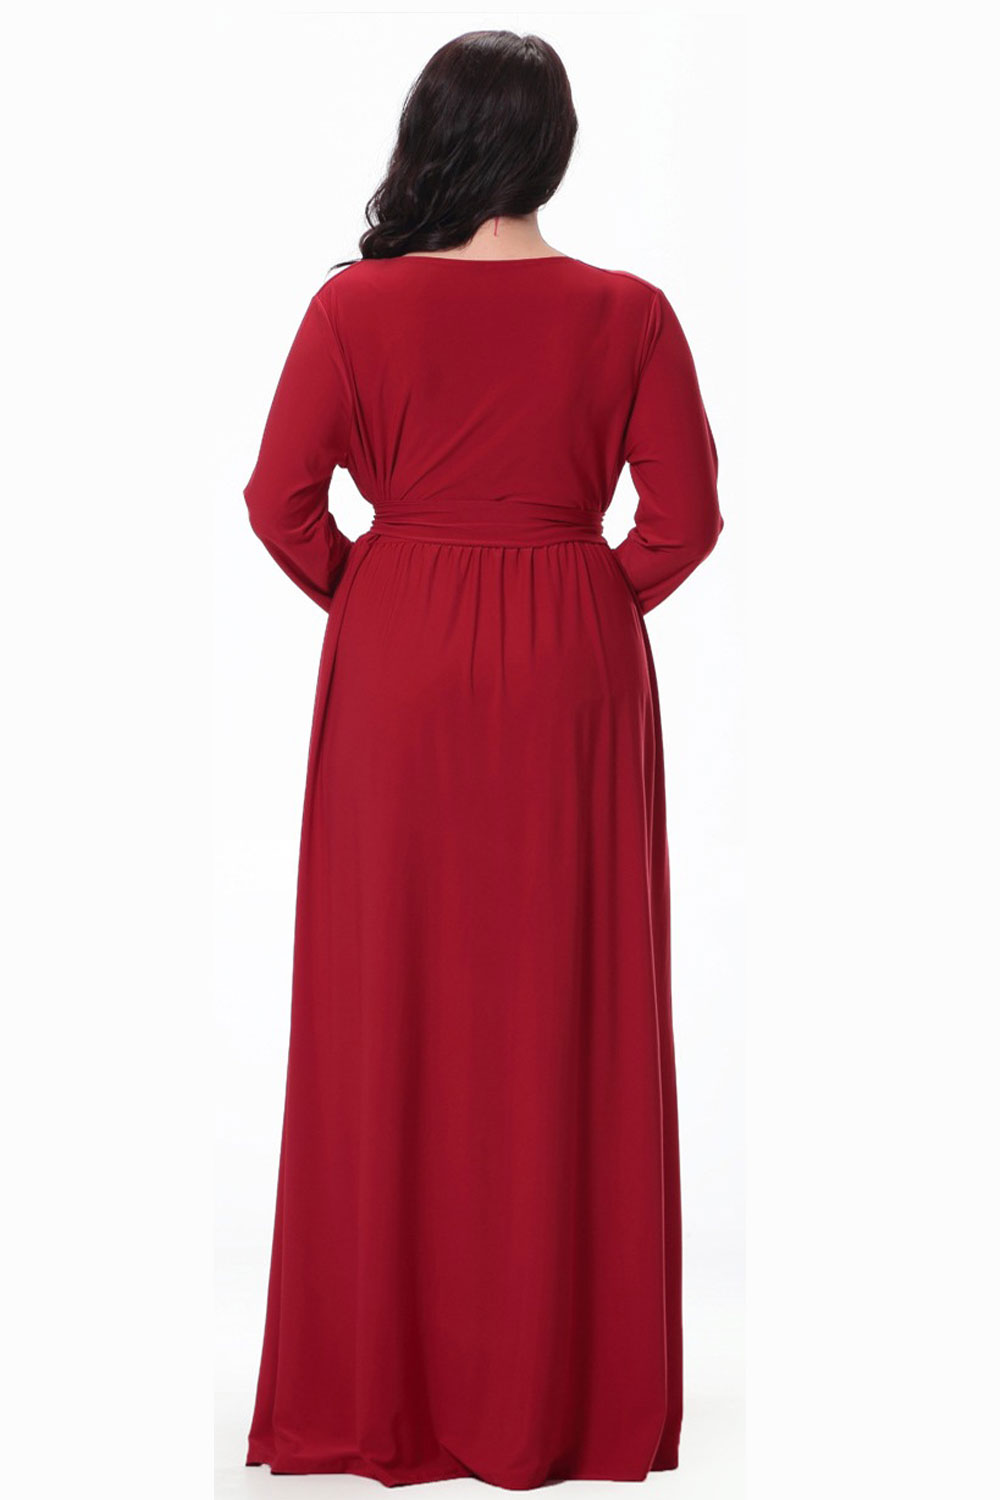 8f810db01bd UNOMATCH WOMEN PLUS SIZE PLEATED MAXI GOWN PARTY DRESS RED ...